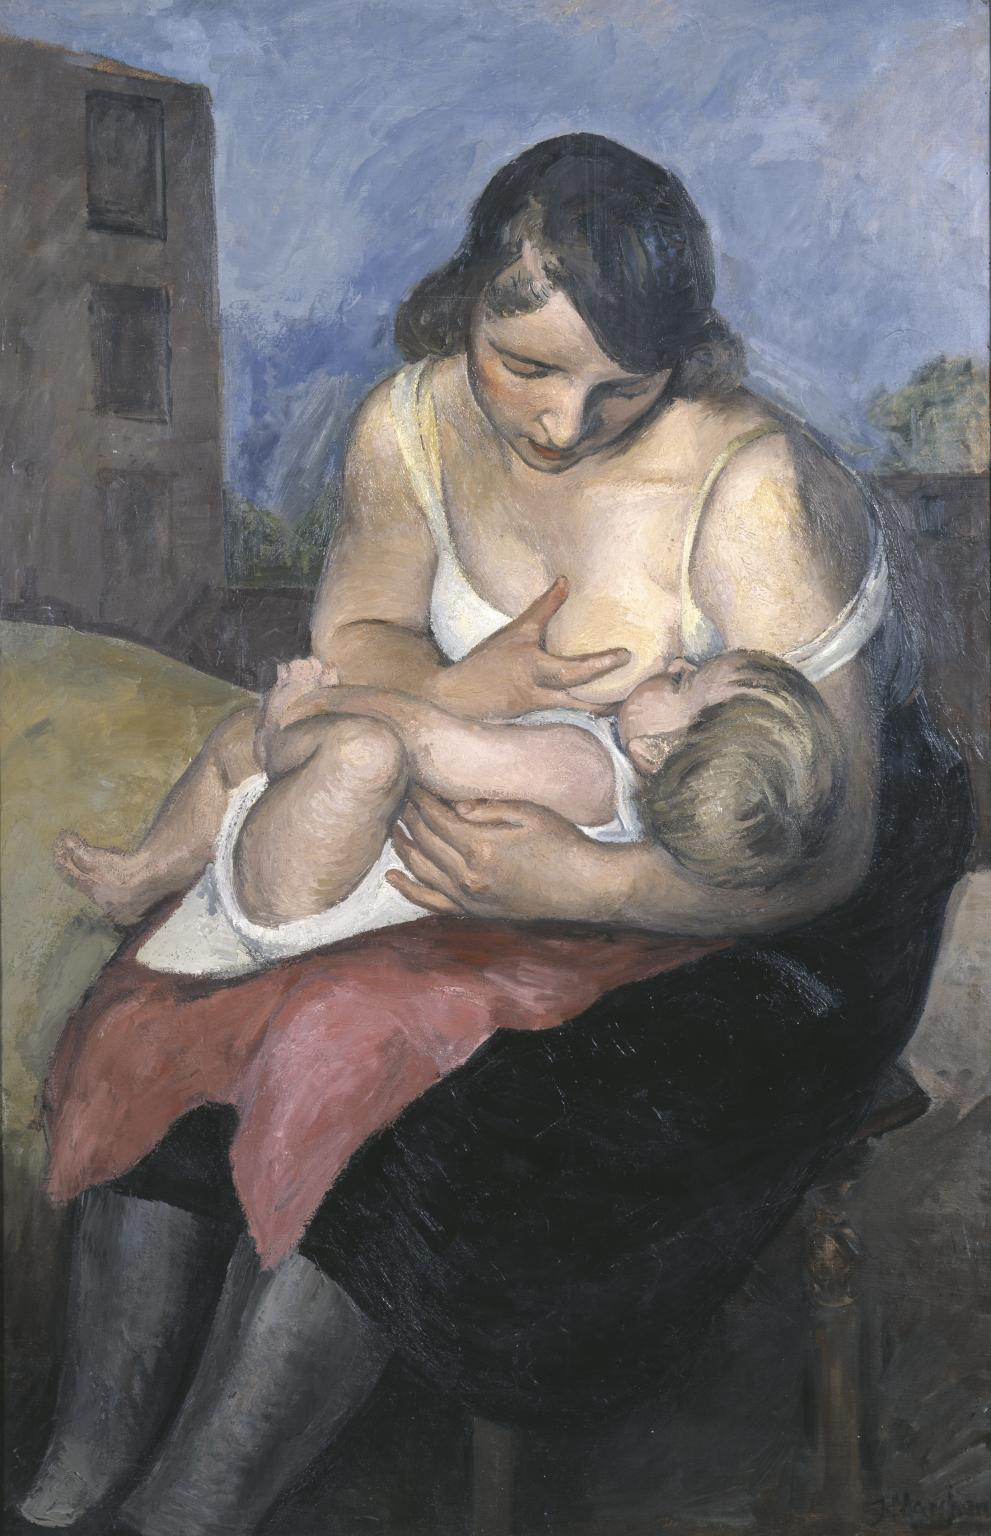 Jean Hippolyte Marchand |1883-1940 | Maternity | 1921, Tate Museum